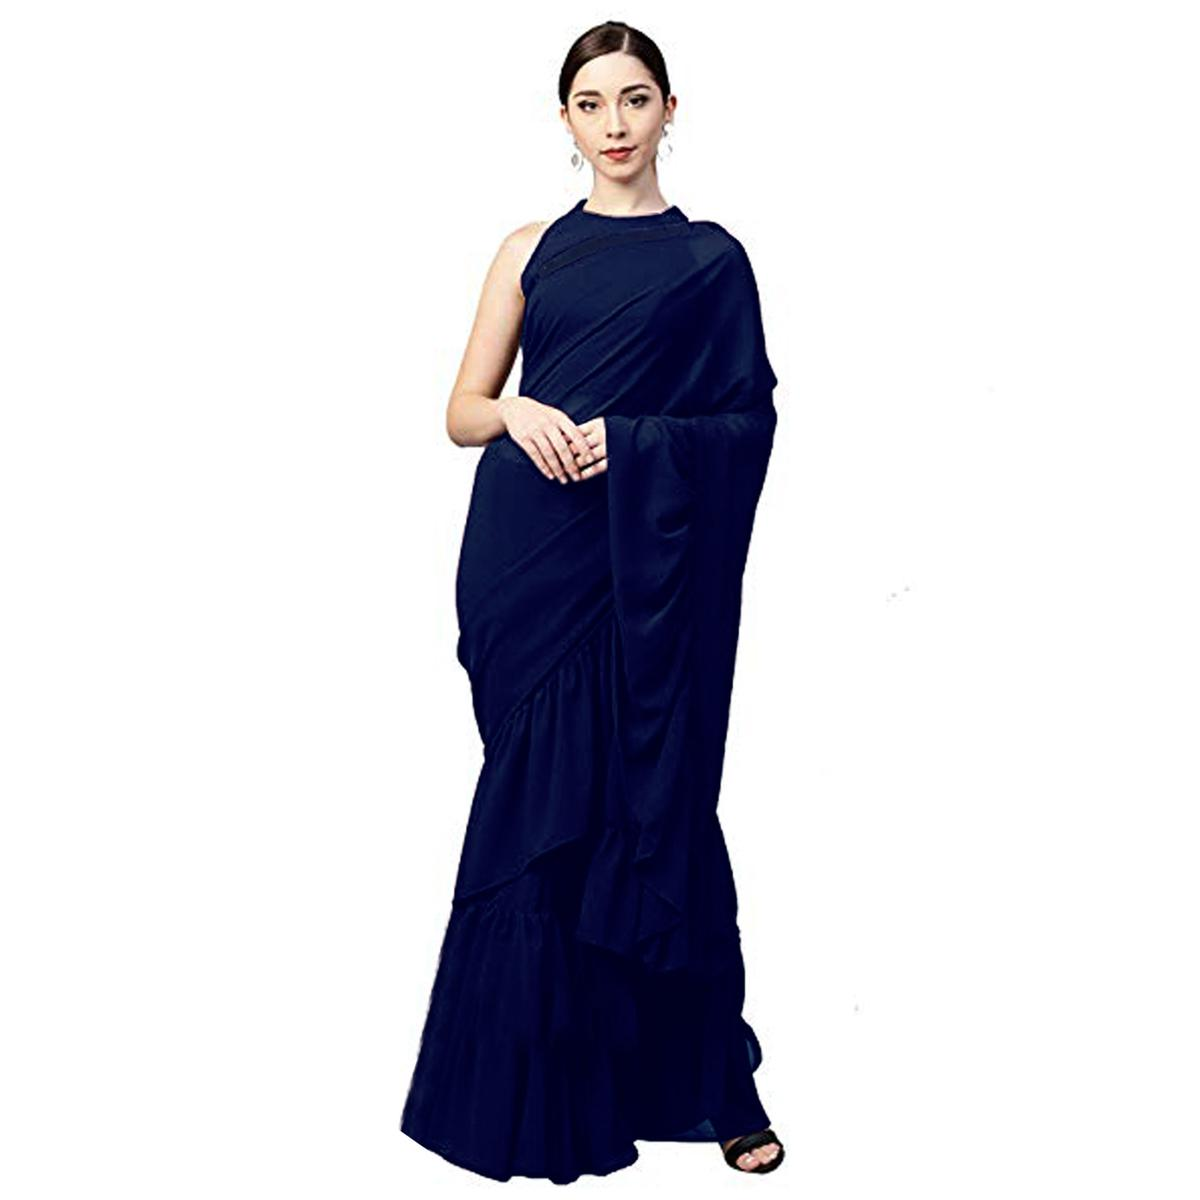 eca61f2efb16 Buy Opulent Navy Blue Colored Party Wear Fancy Georgette Saree Online  India